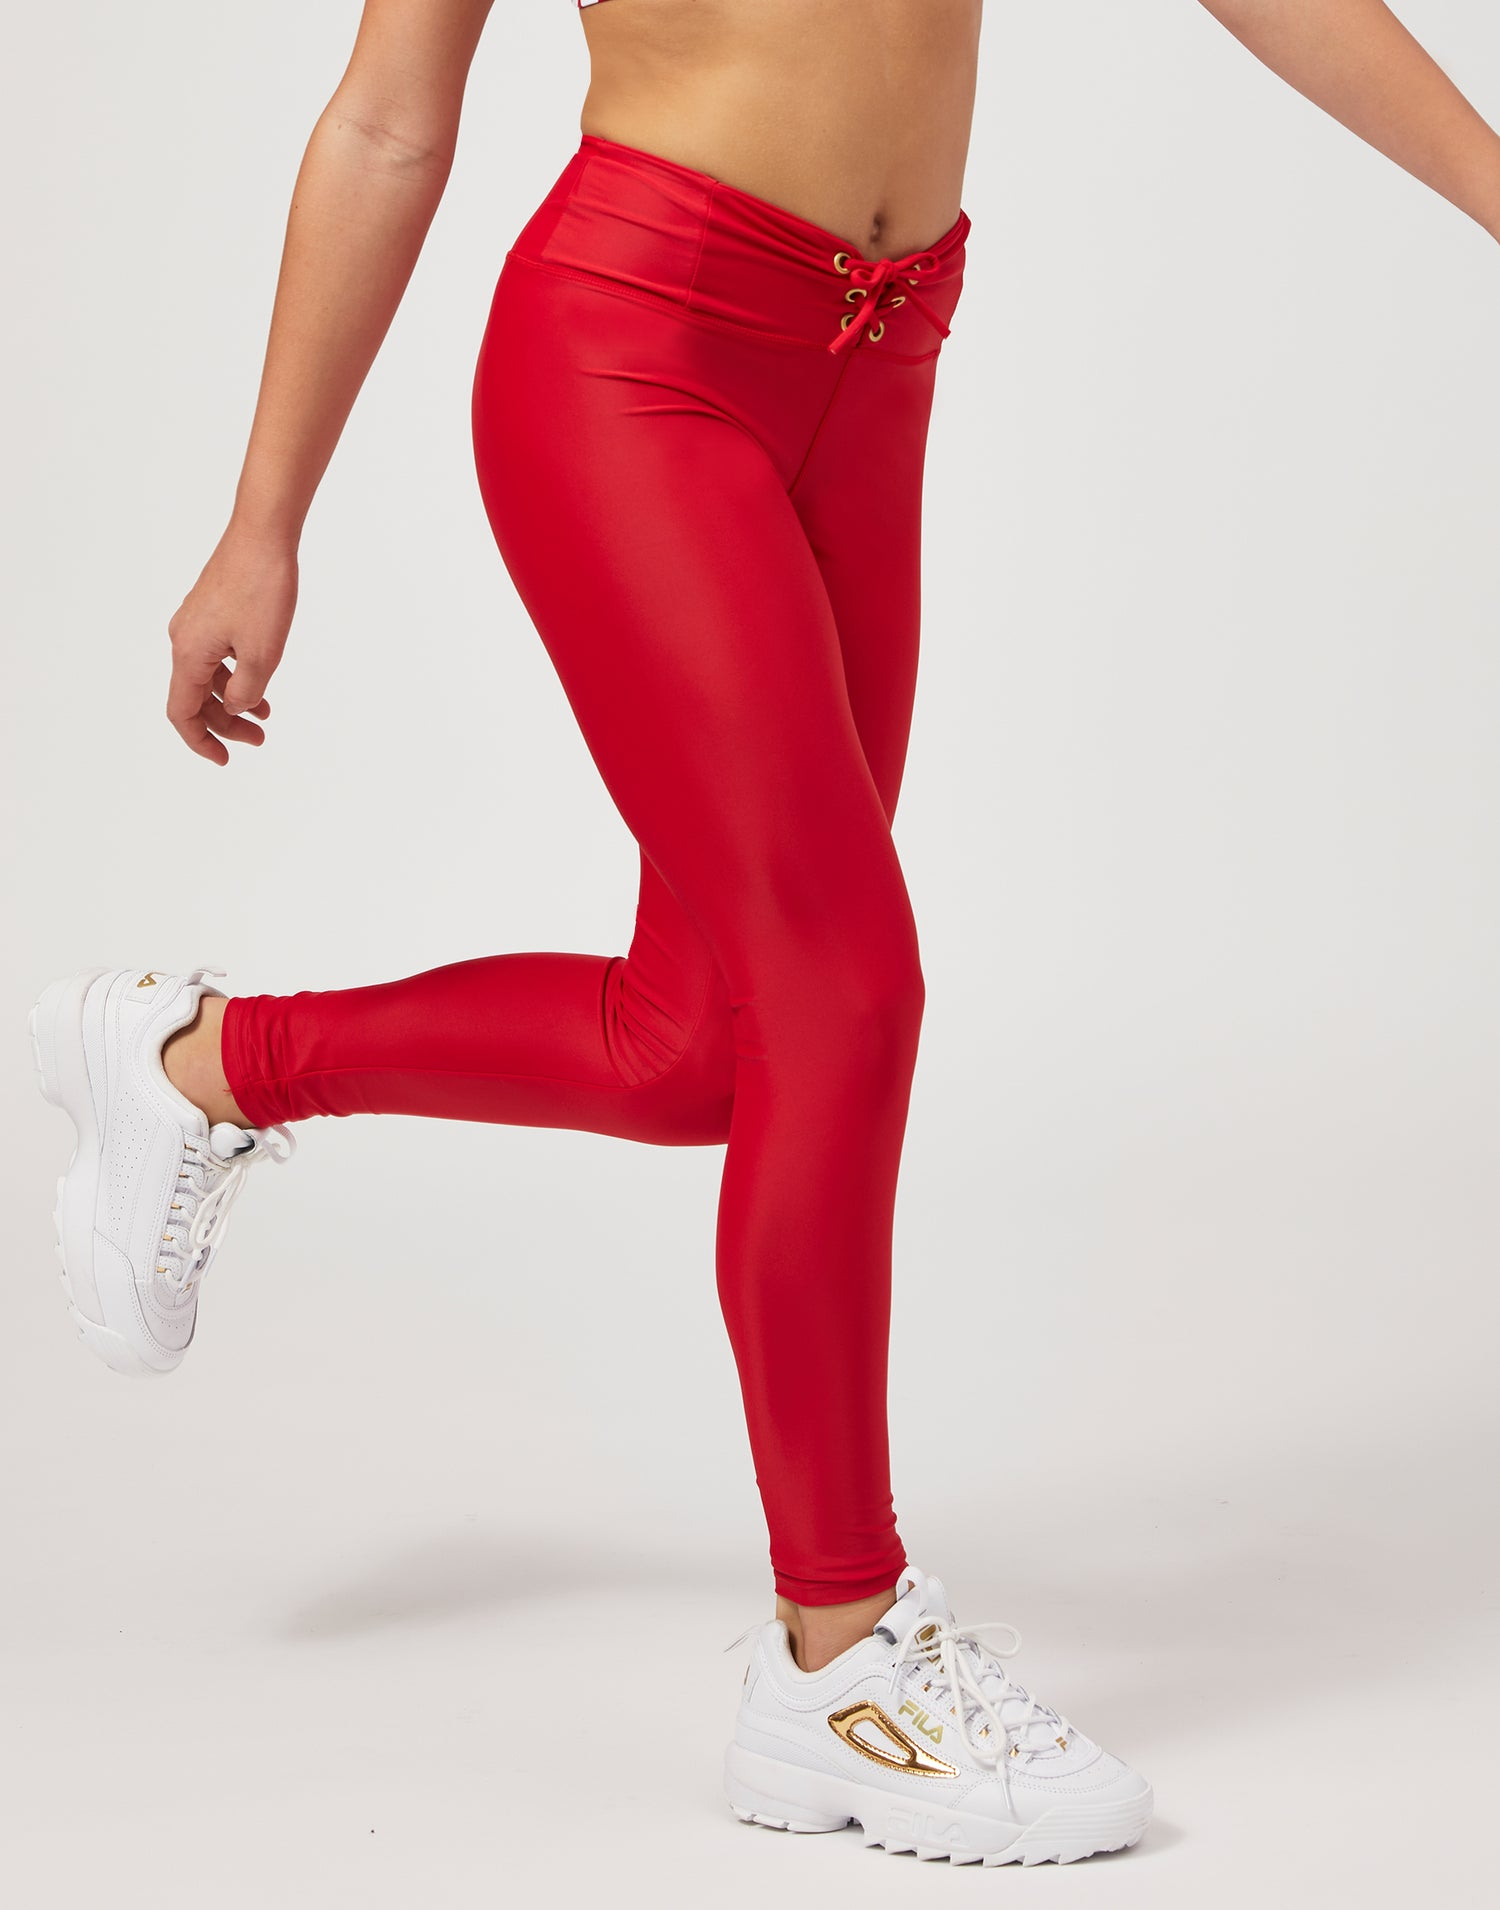 Child Payton Legging with Lace Up Detail in Red - front detail view